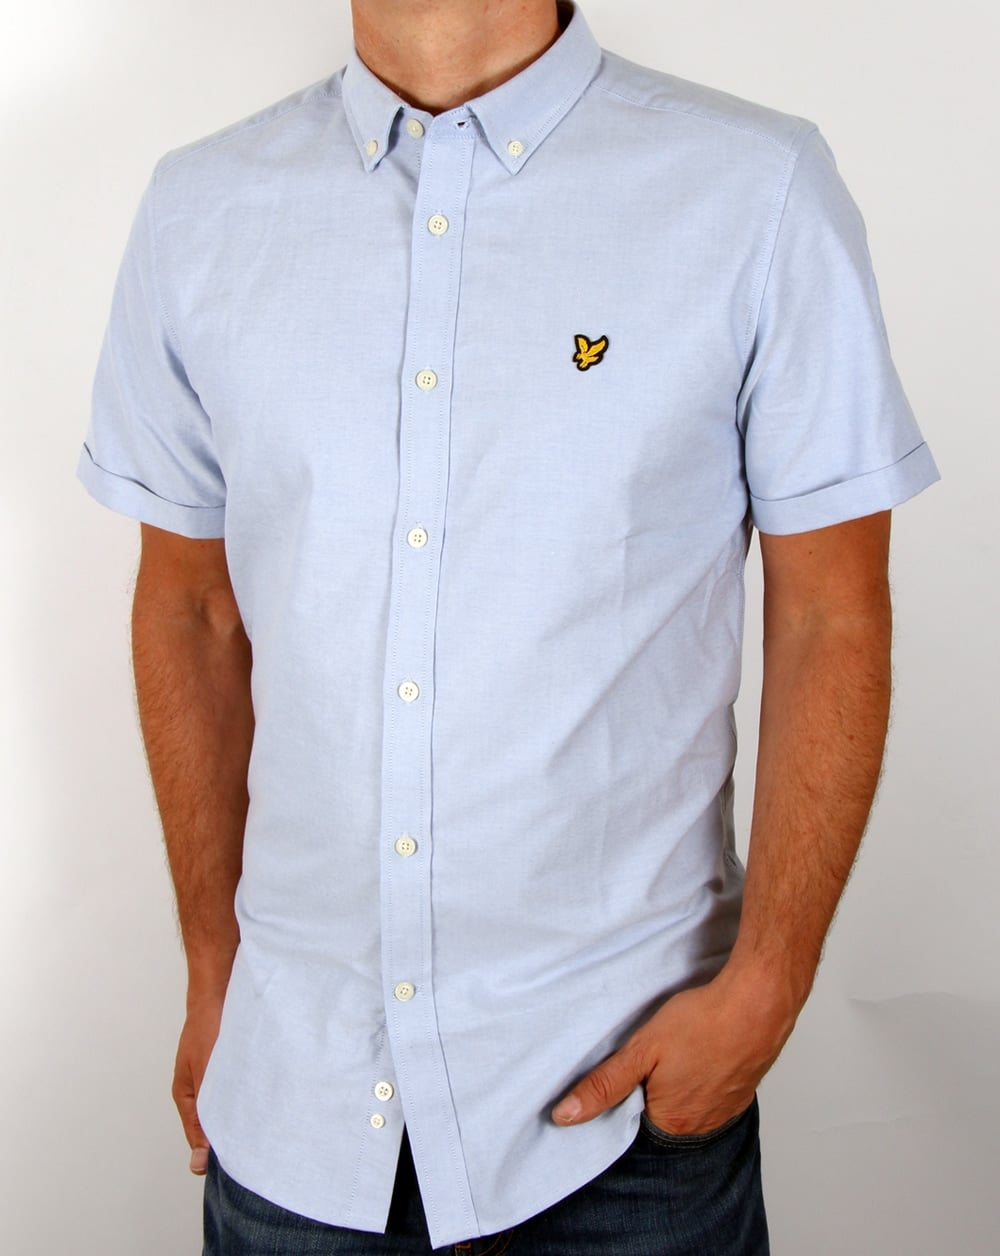 Lyle and scott oxford short sleeve shirt riviera blue for Lyle and scott shirt sale